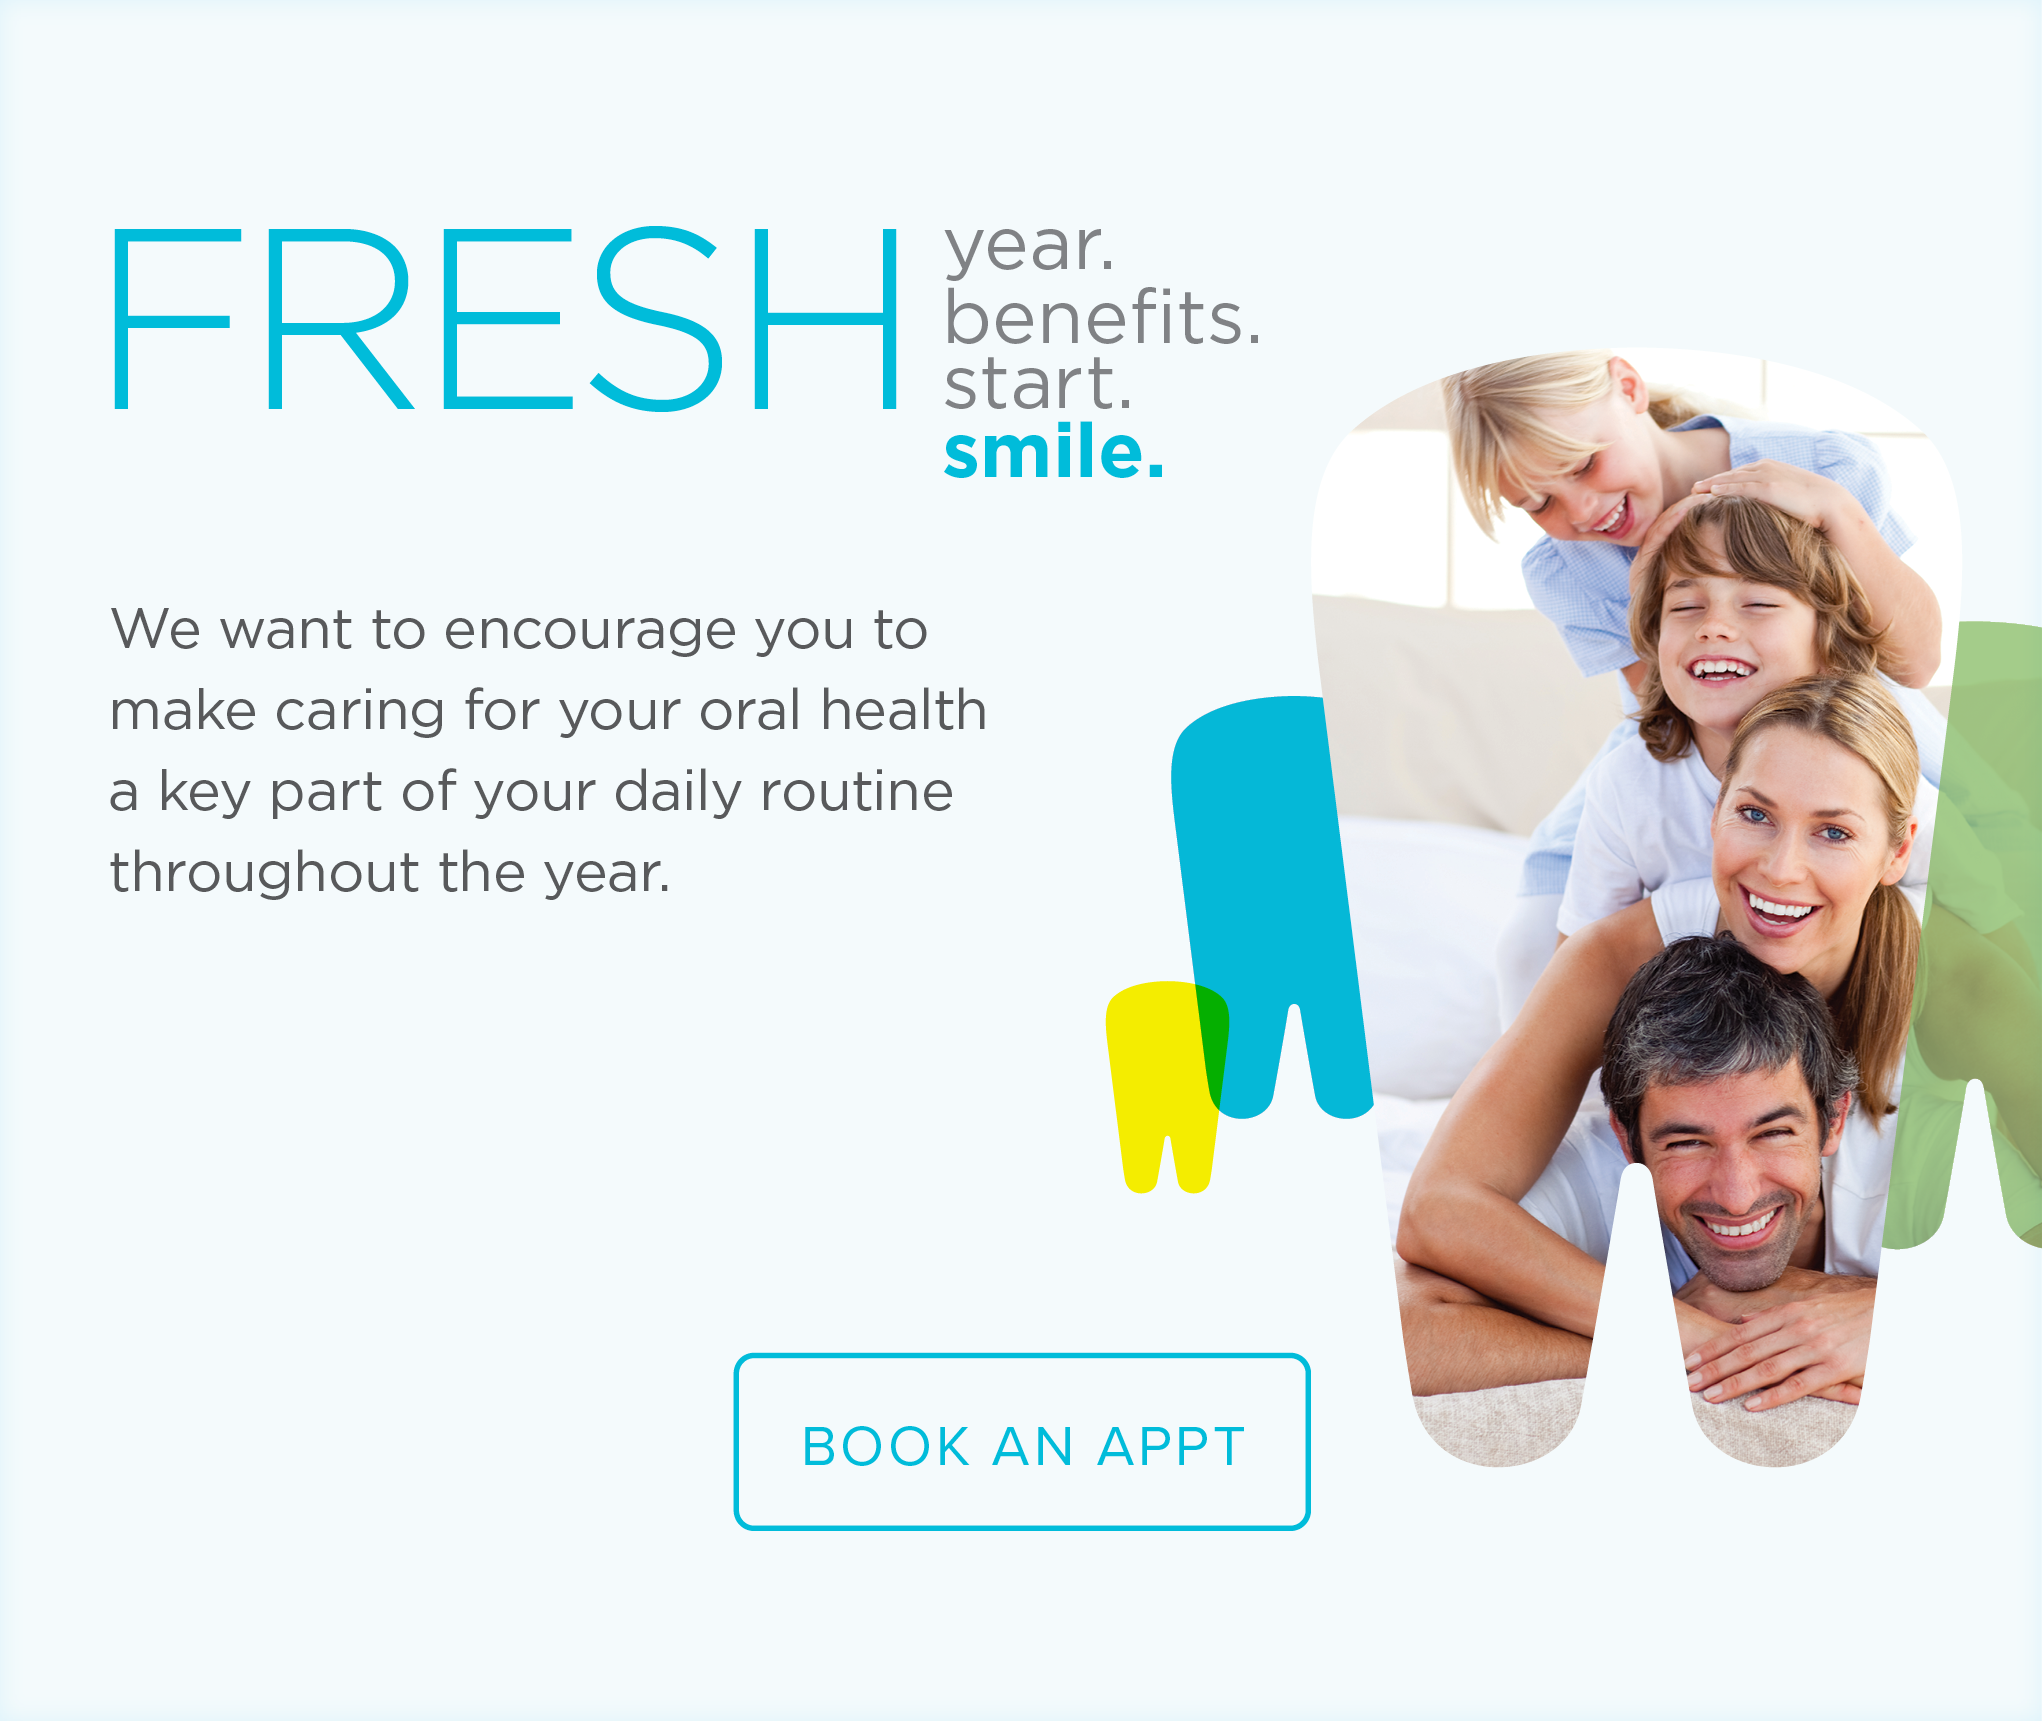 Legacy Smiles Dentistry - Make the Most of Your Benefits